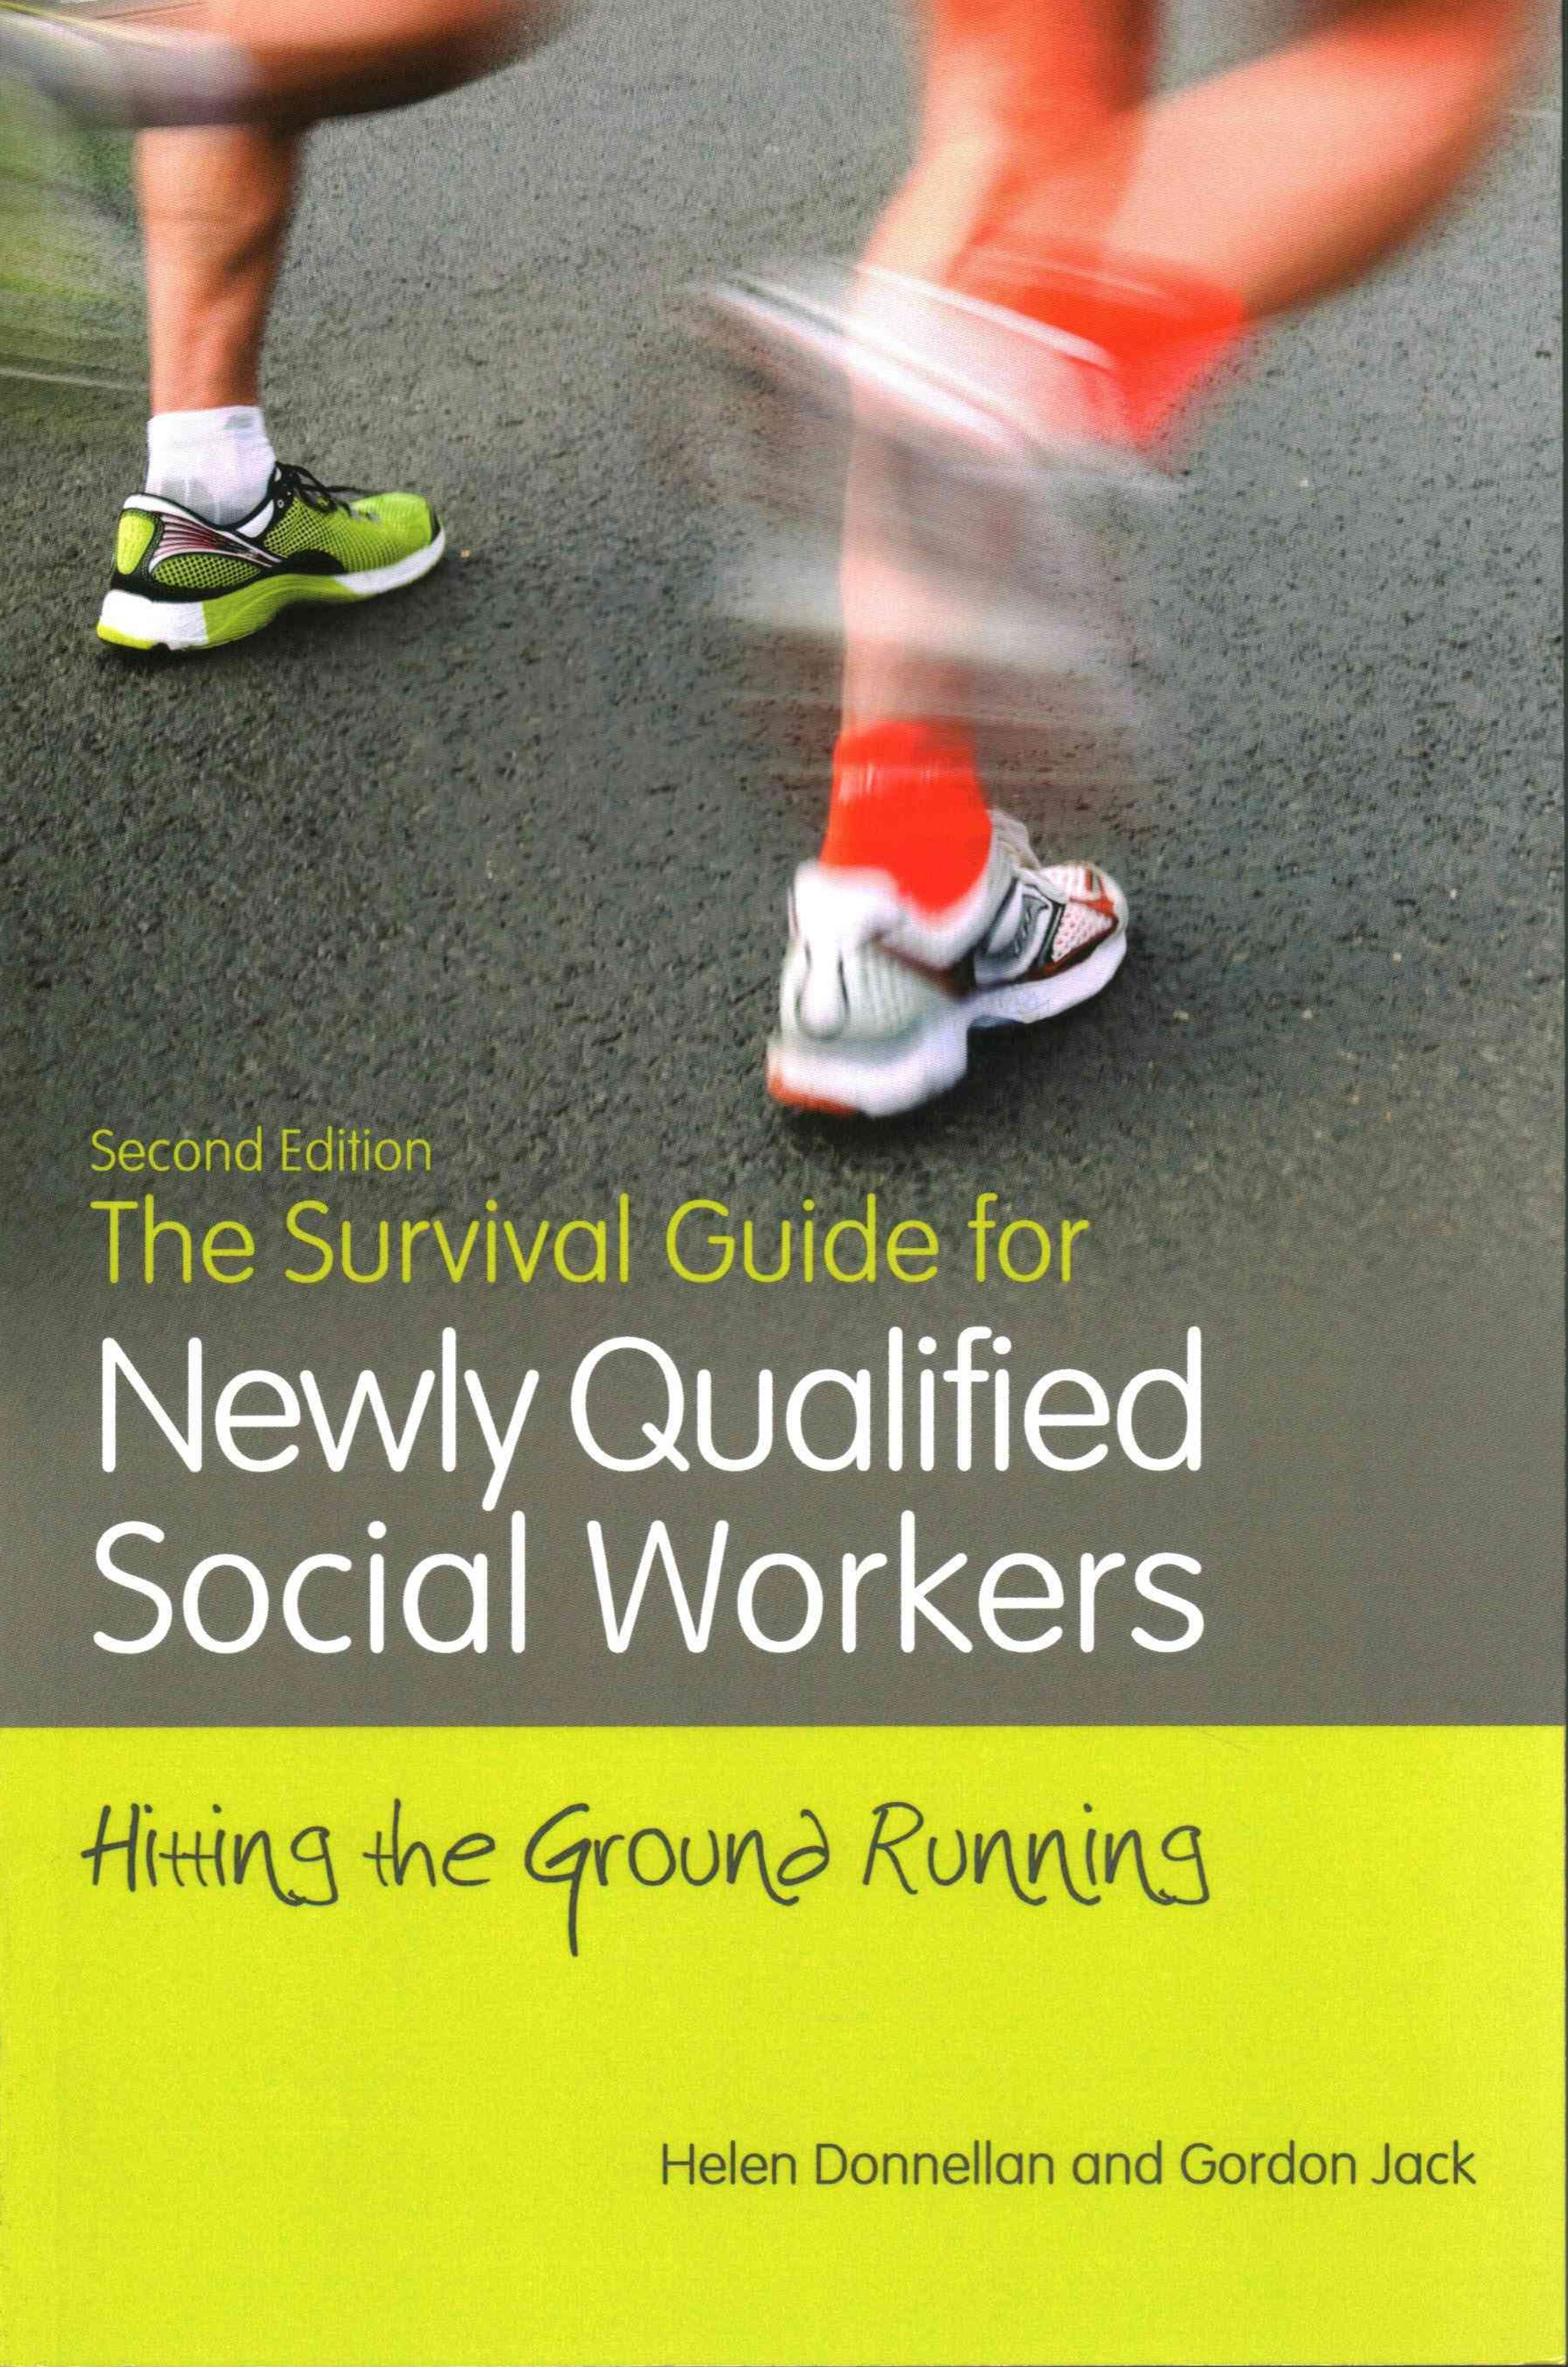 Survival Guide for Newly Qualified Social Workers